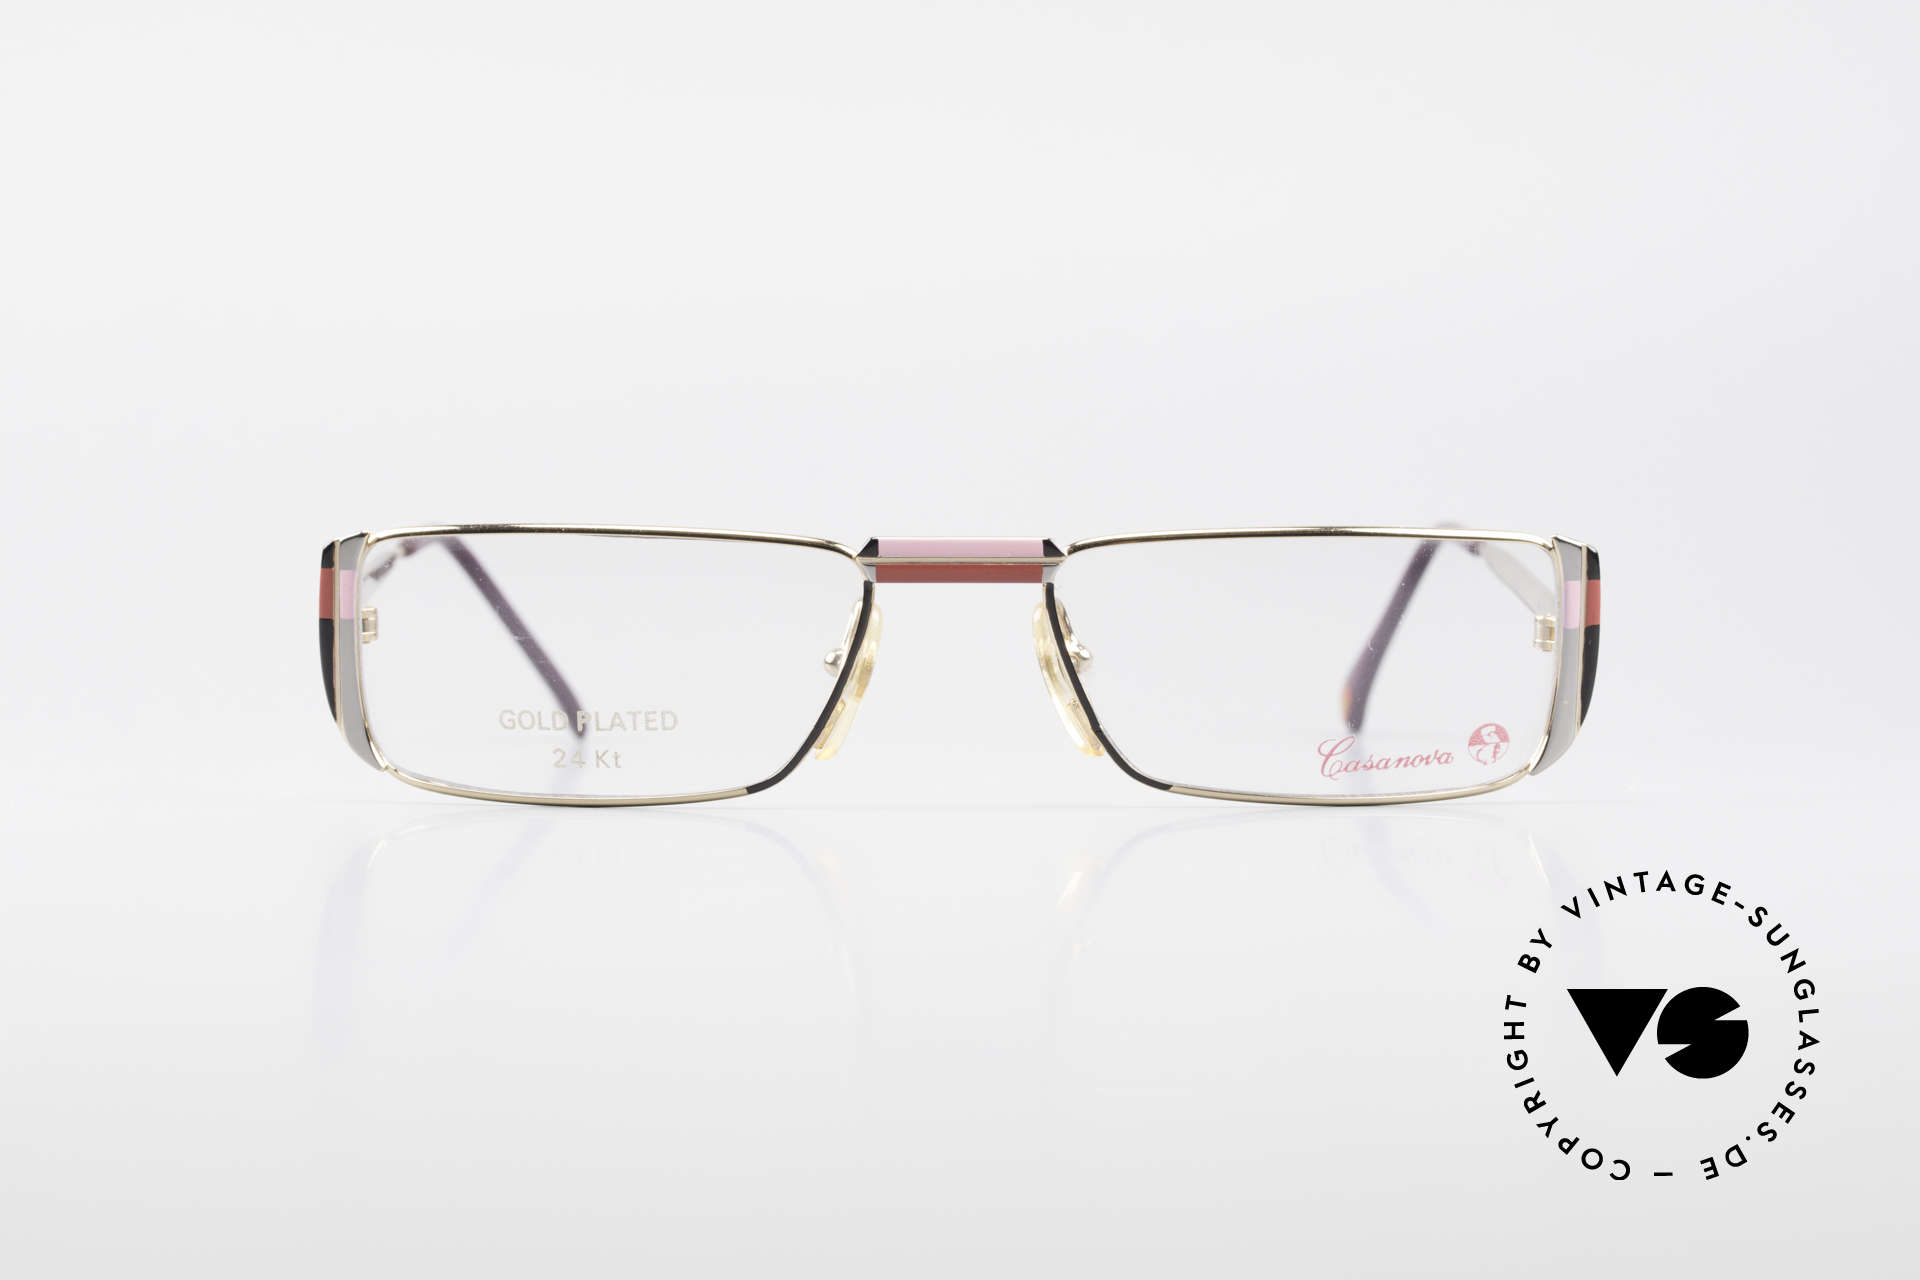 Casanova NM3 Gold Plated Reading Glasses, gold-plated frame (a matter of course, at that time), Made for Women